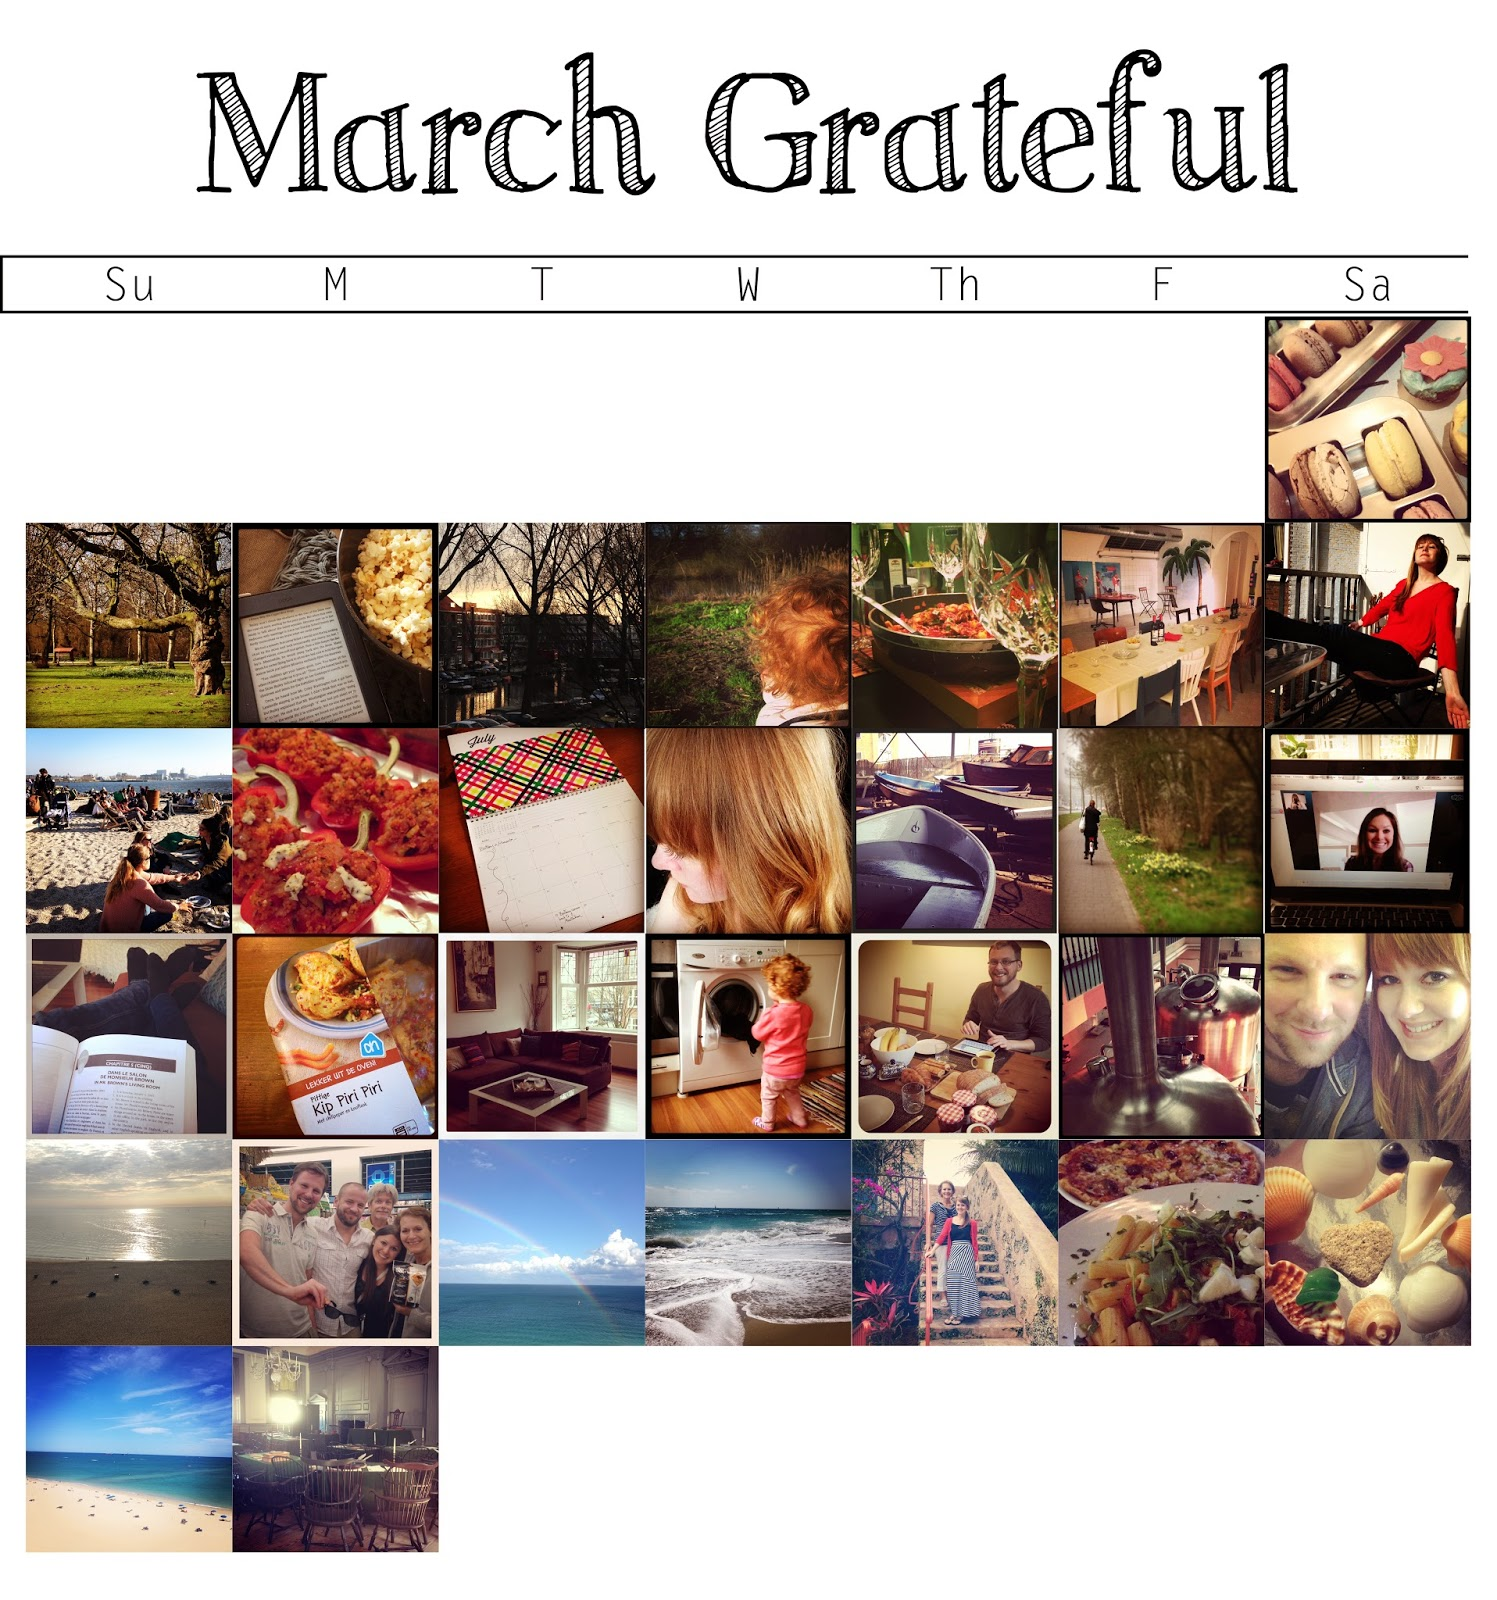 shmamsterdam march grateful a guide to starting your own